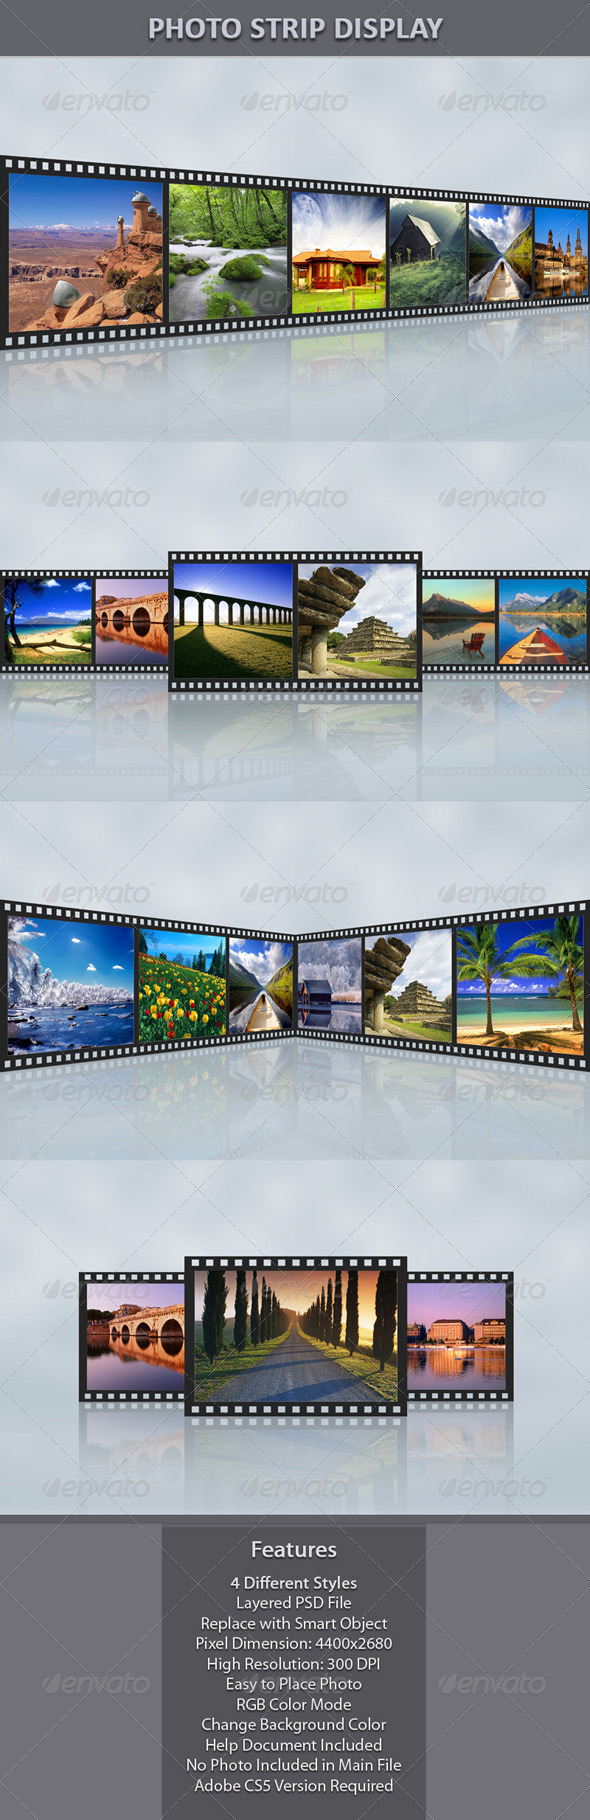 GraphicRiver Photo Strip Display 7644232